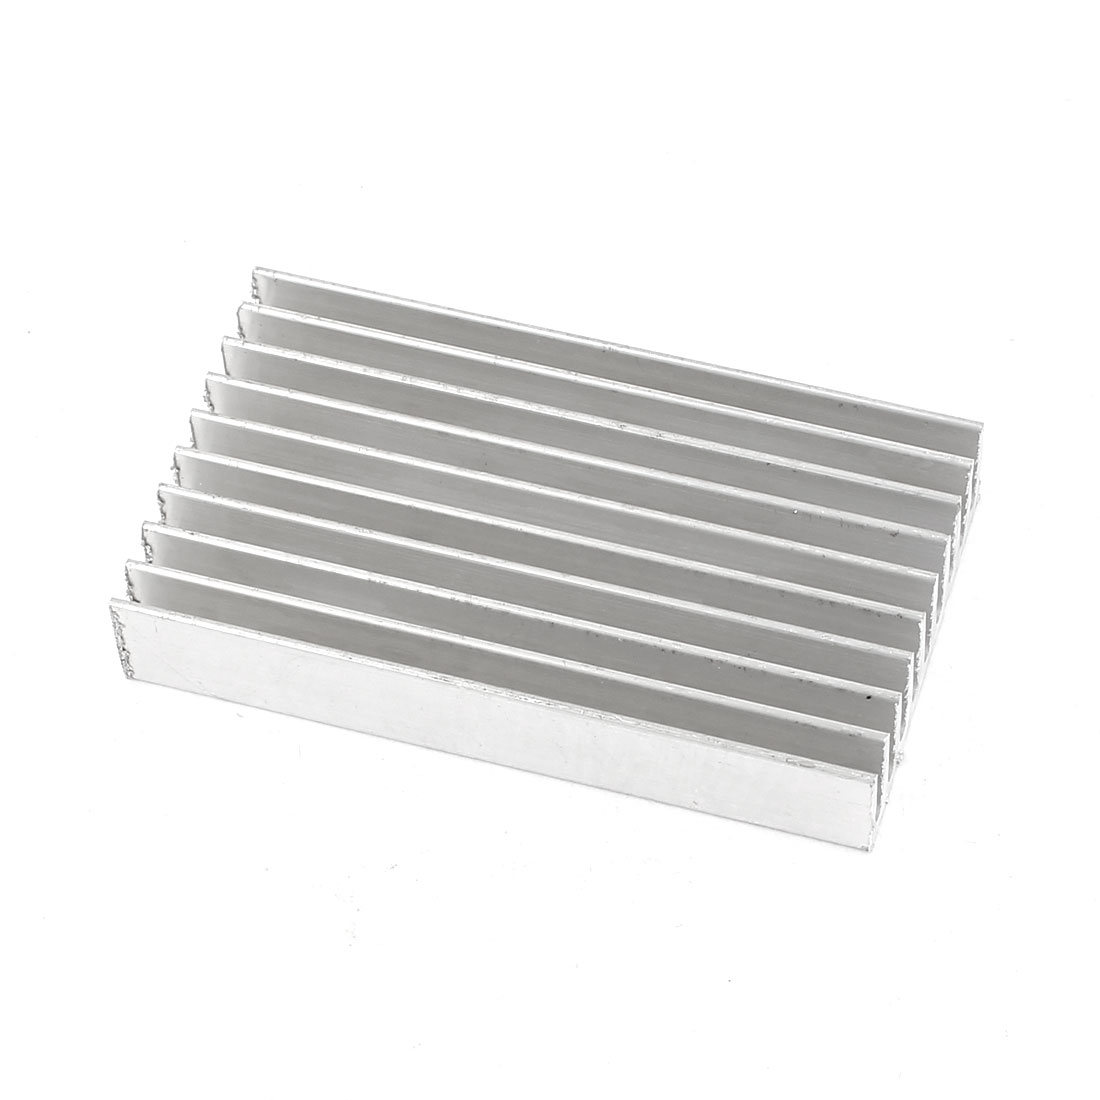 Silver White 60mmx35mmx10mm LED Heat Sink Aluminum Cooling Fin